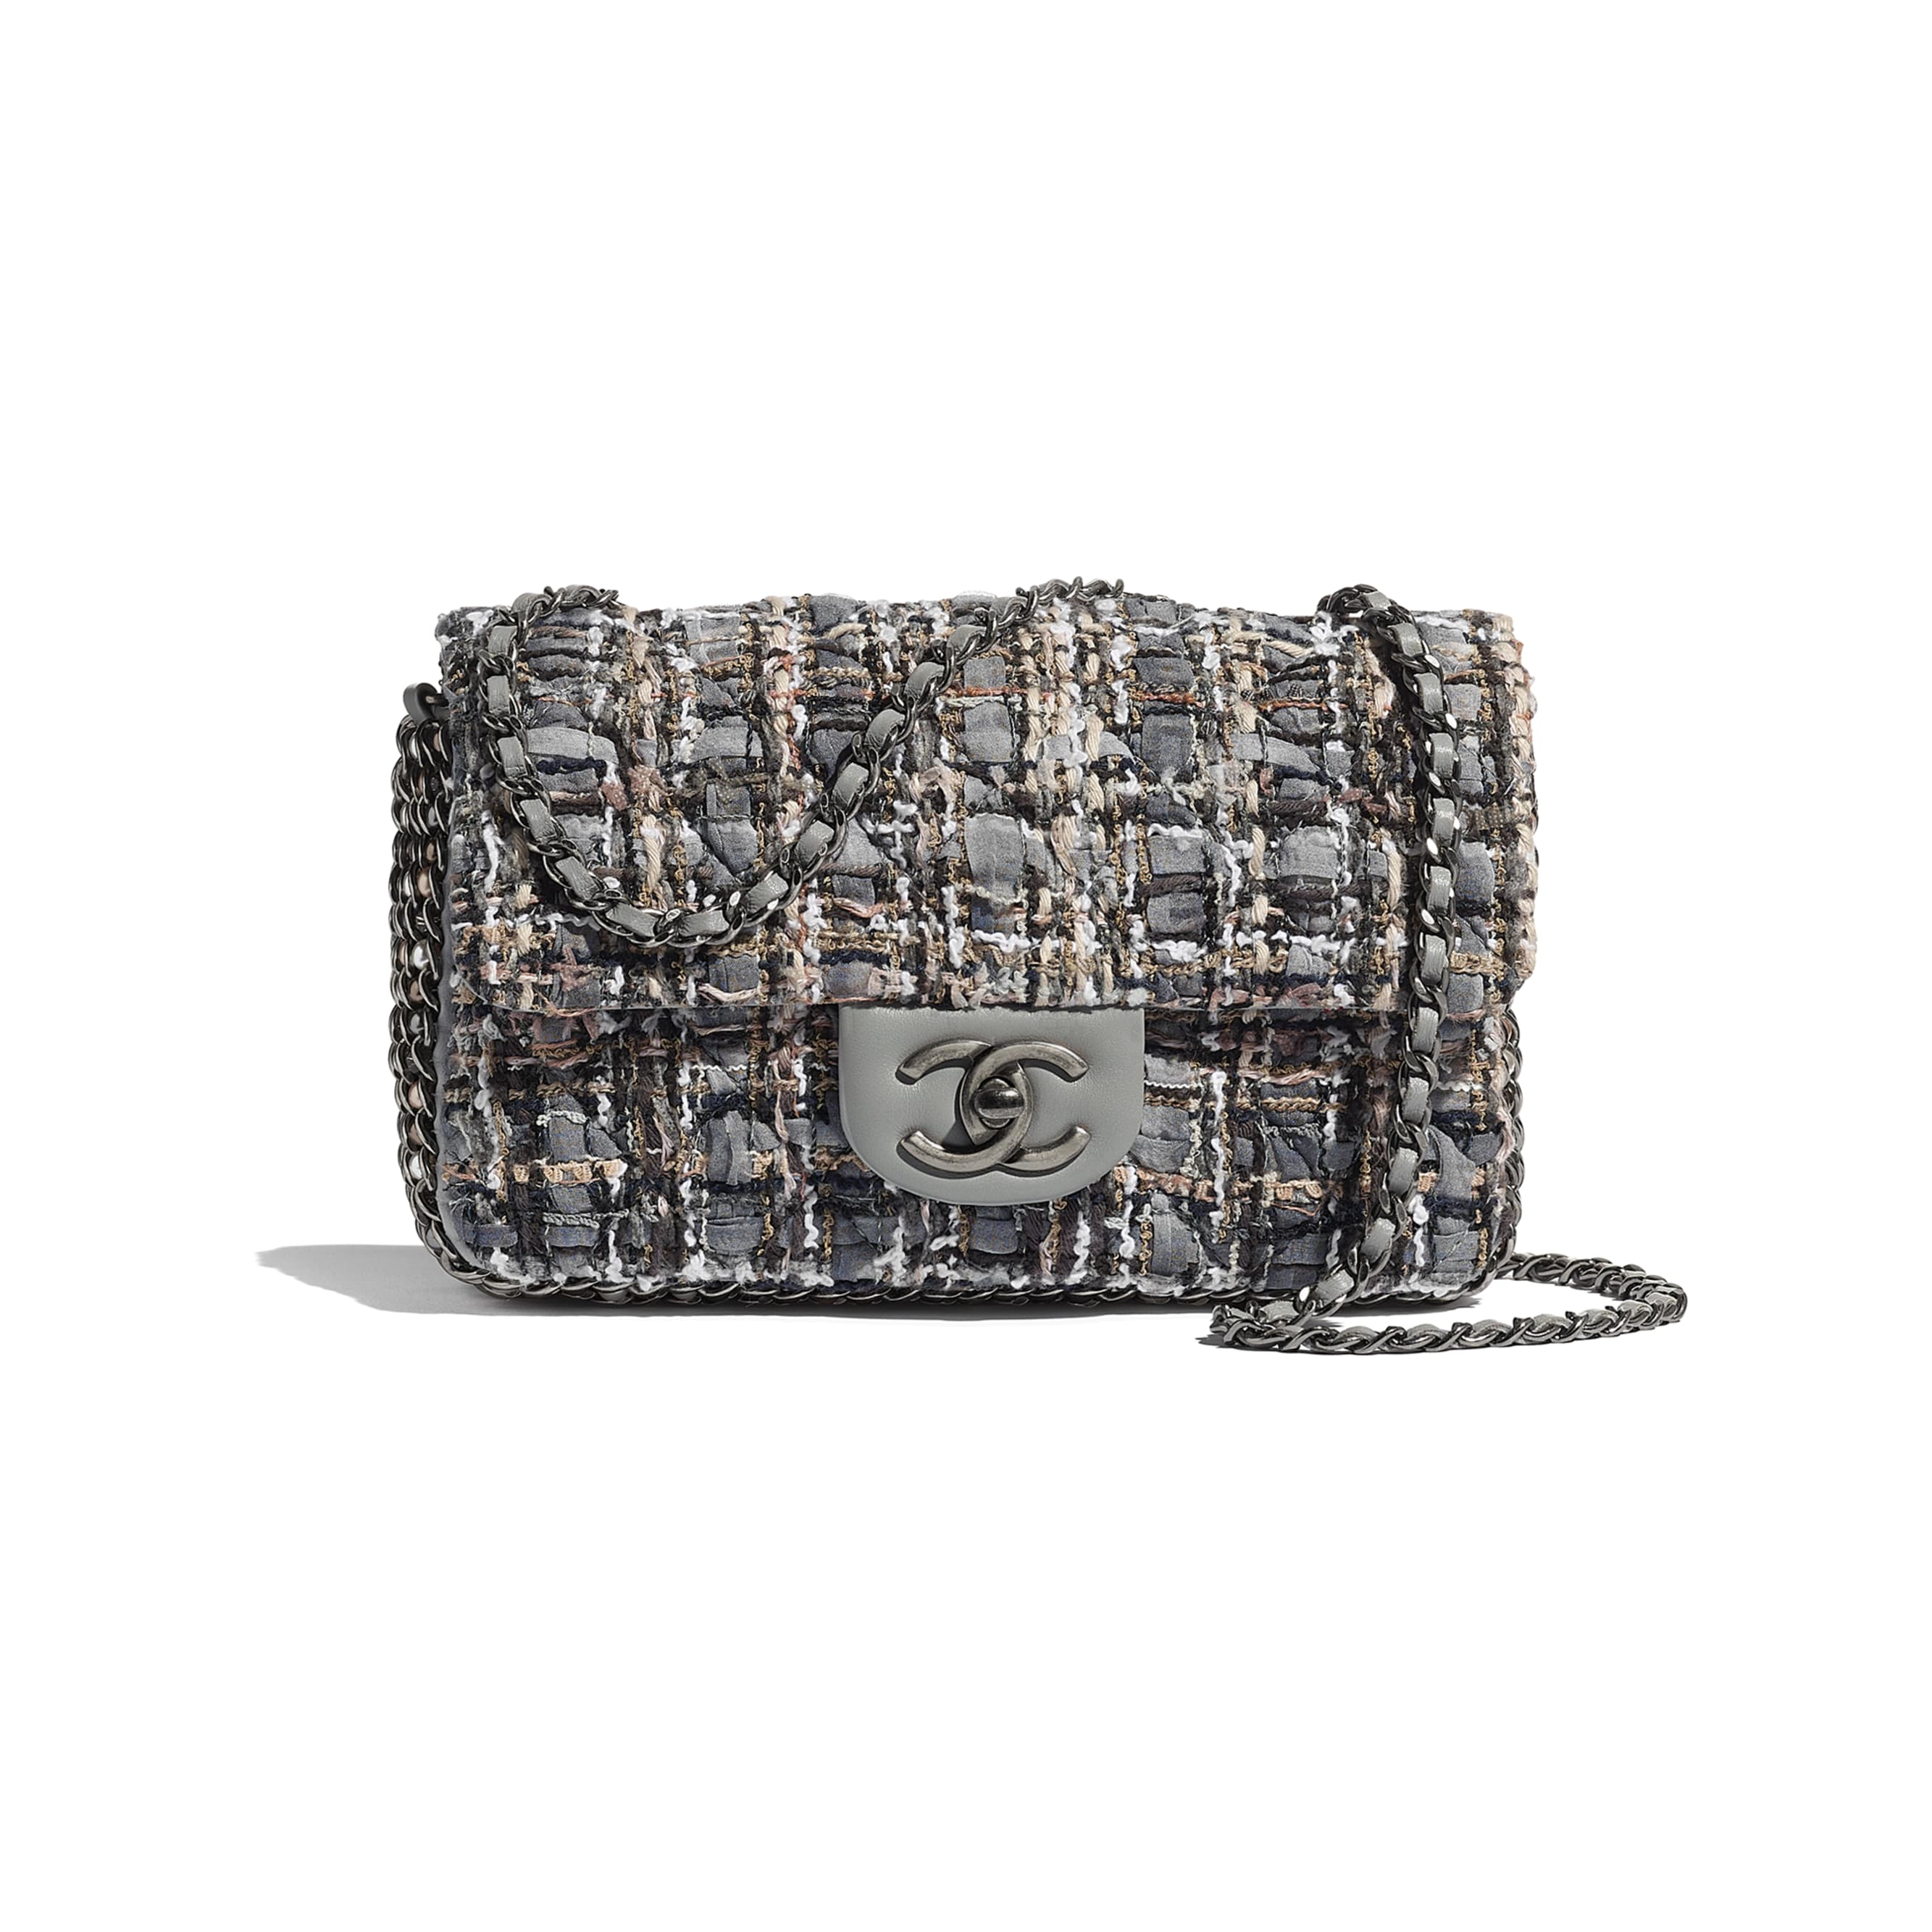 Flap Bag - Grey, Beige, Brown & White - Tweed, Imitation Pearls & Ruthenium-Finish Metal - Default view - see standard sized version